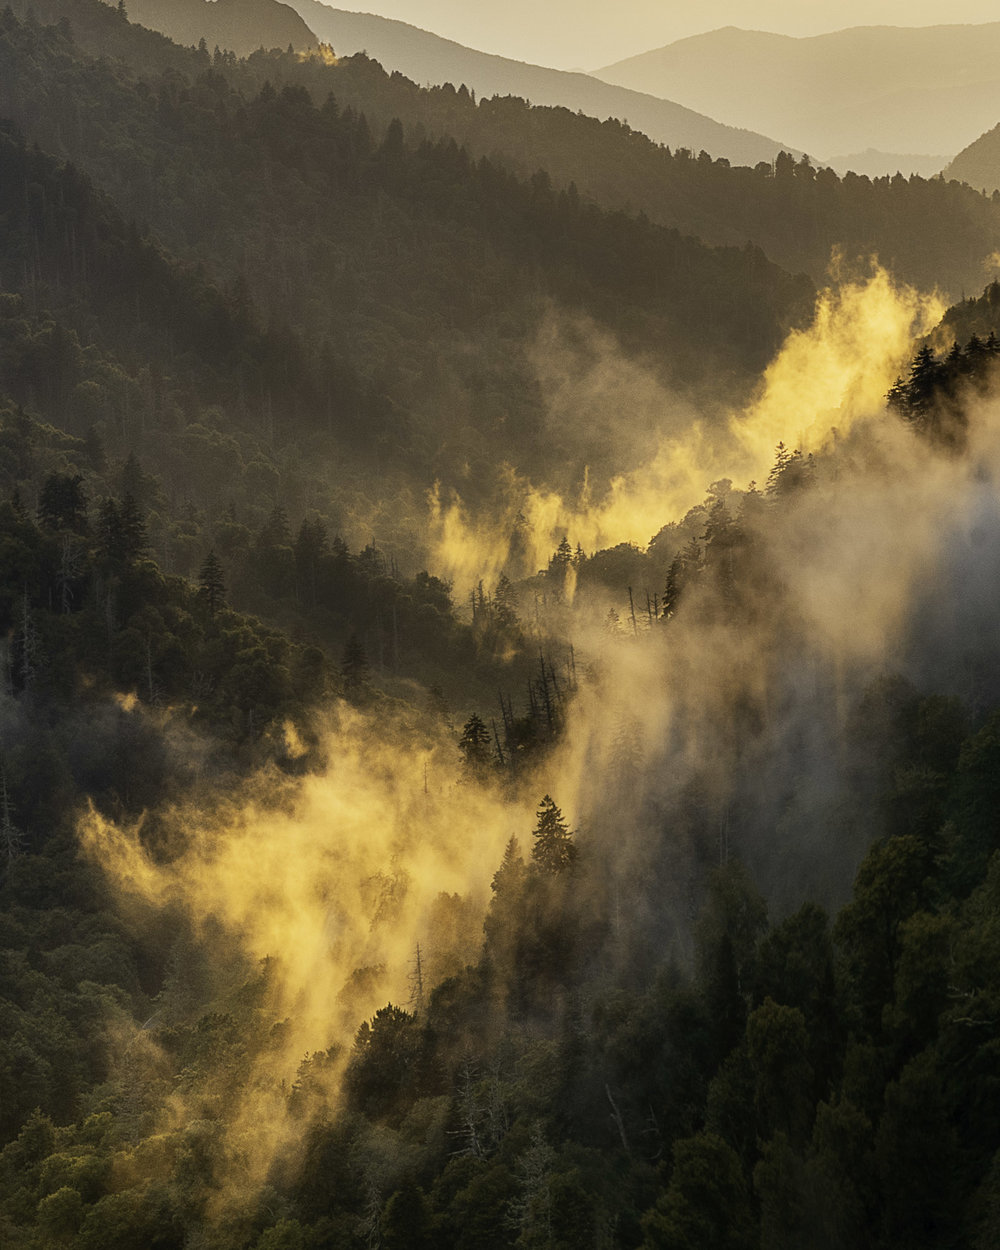 Fog lighting up at sunset in the great smoky mountains